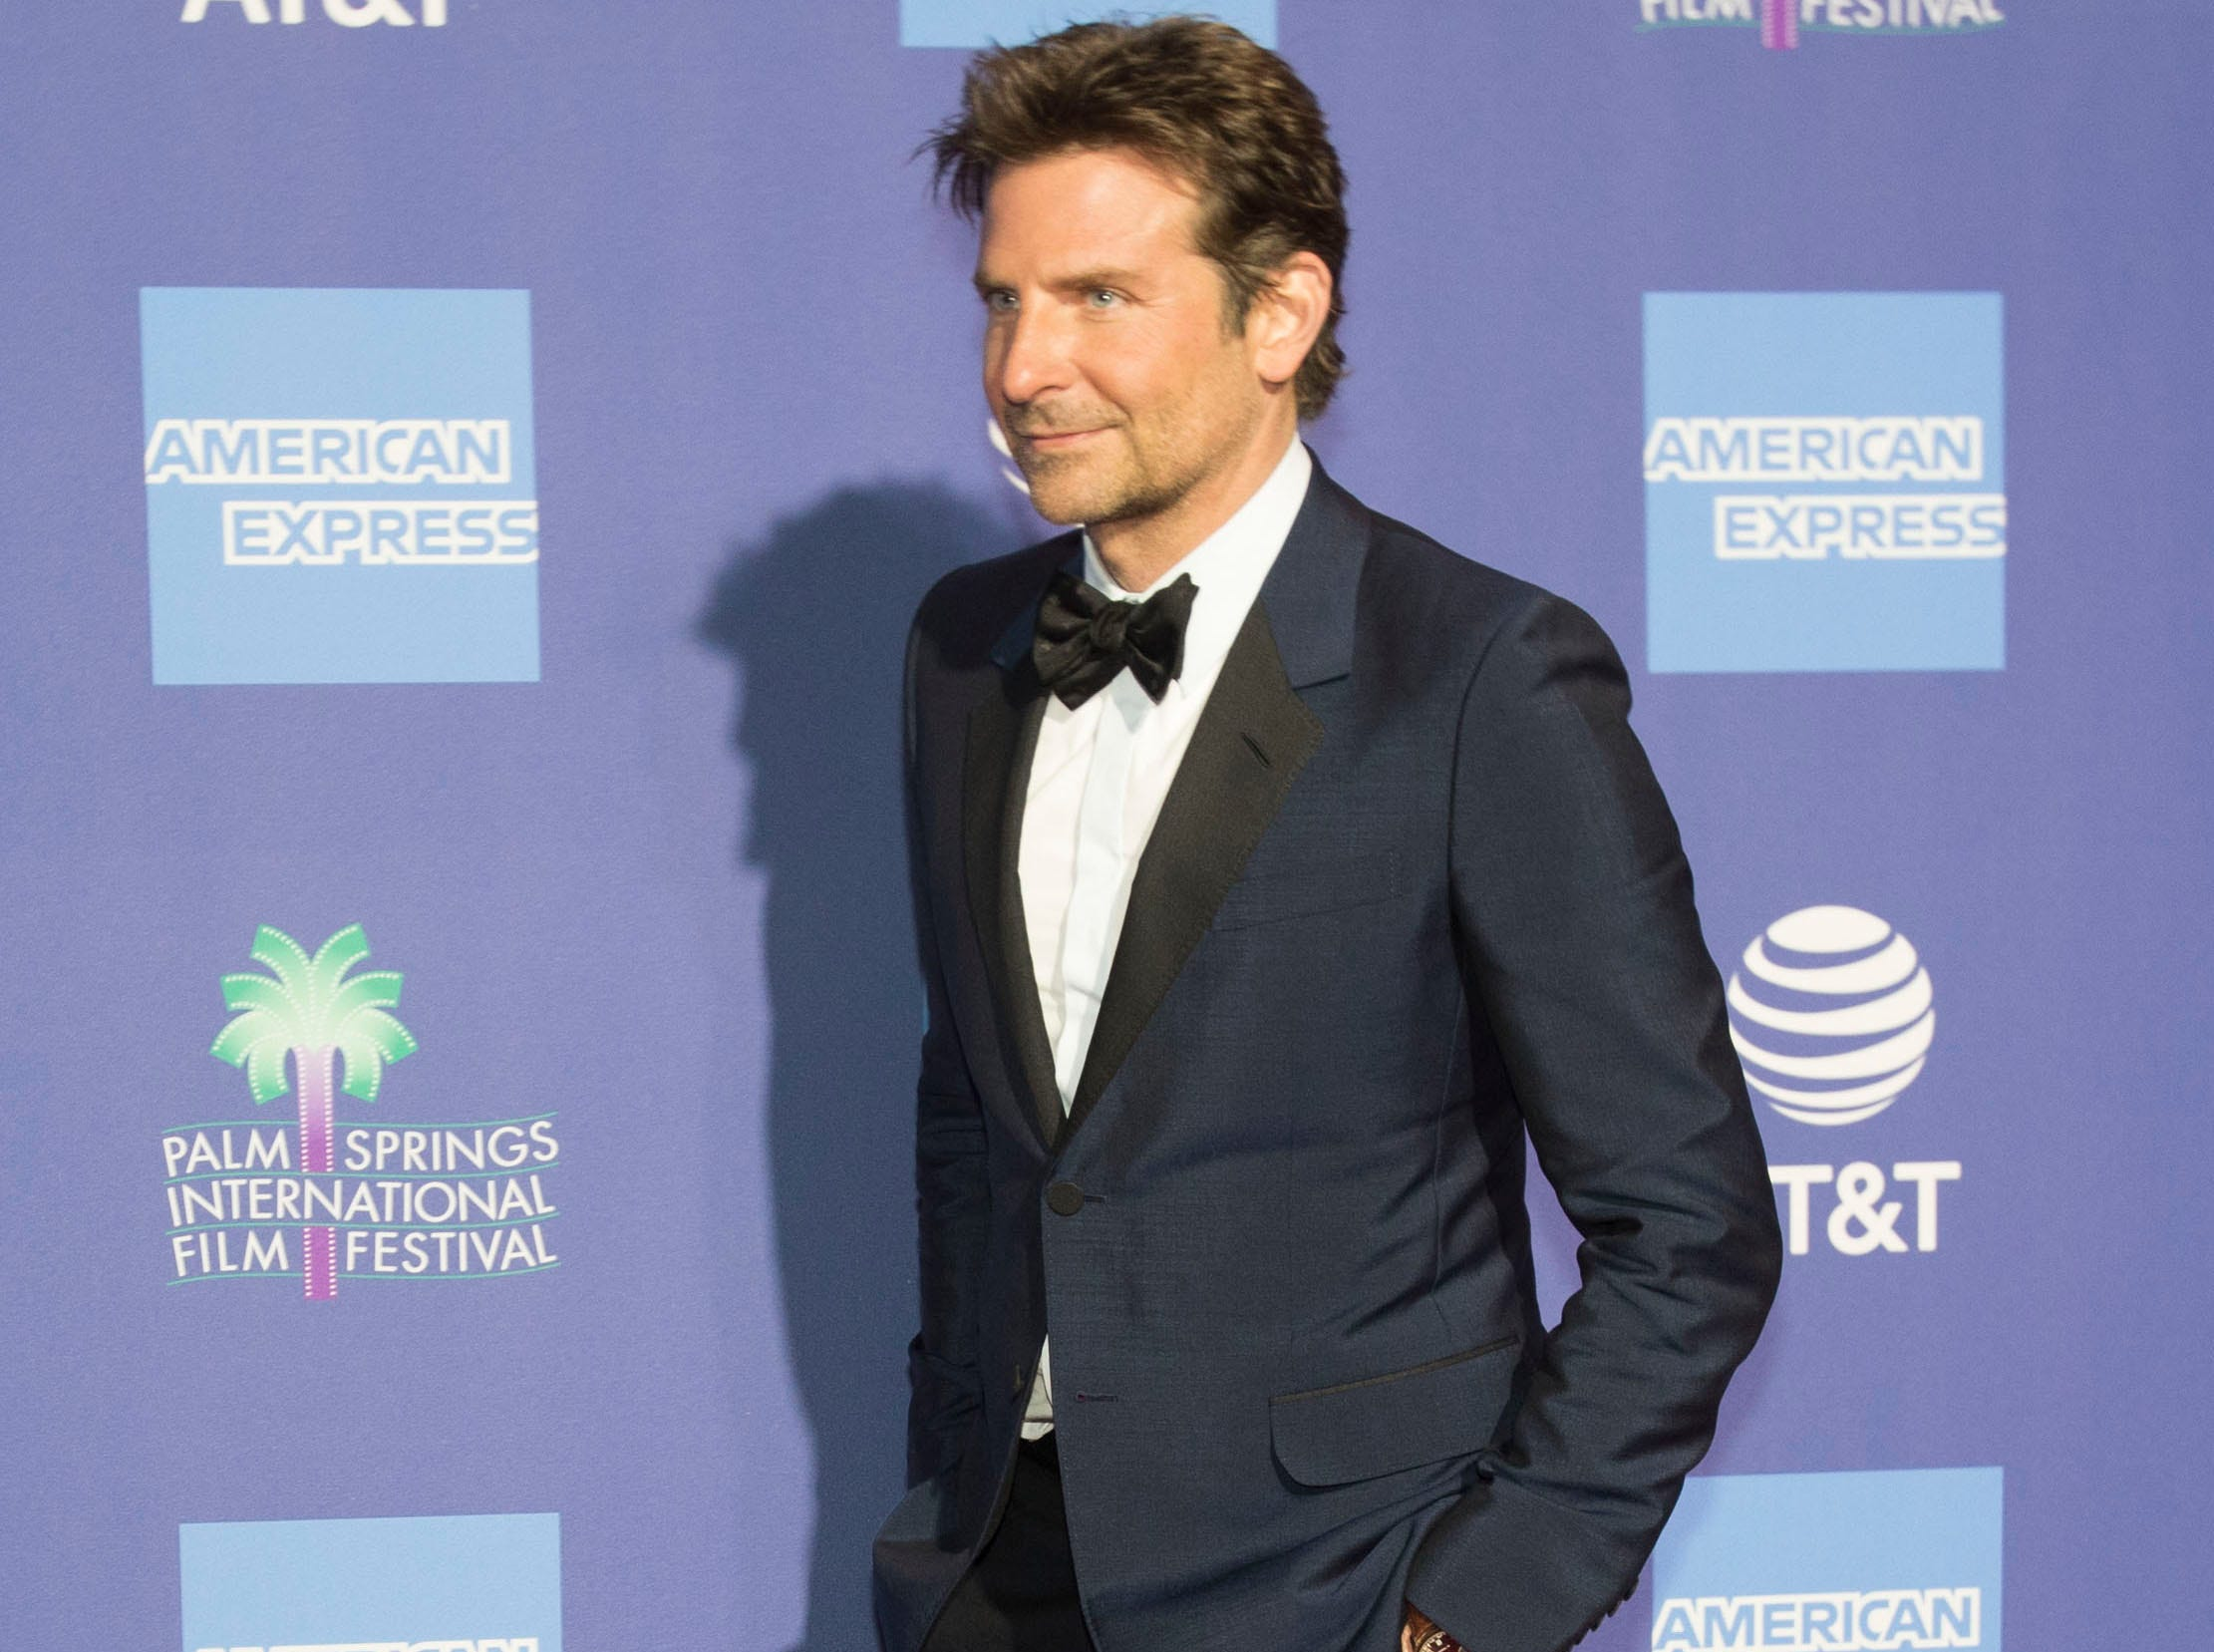 Bradley Cooper arrives on the red carpet during the 2019 Palm Springs International Film Festival at the Palm Springs Convention Center on January 3, 2019.